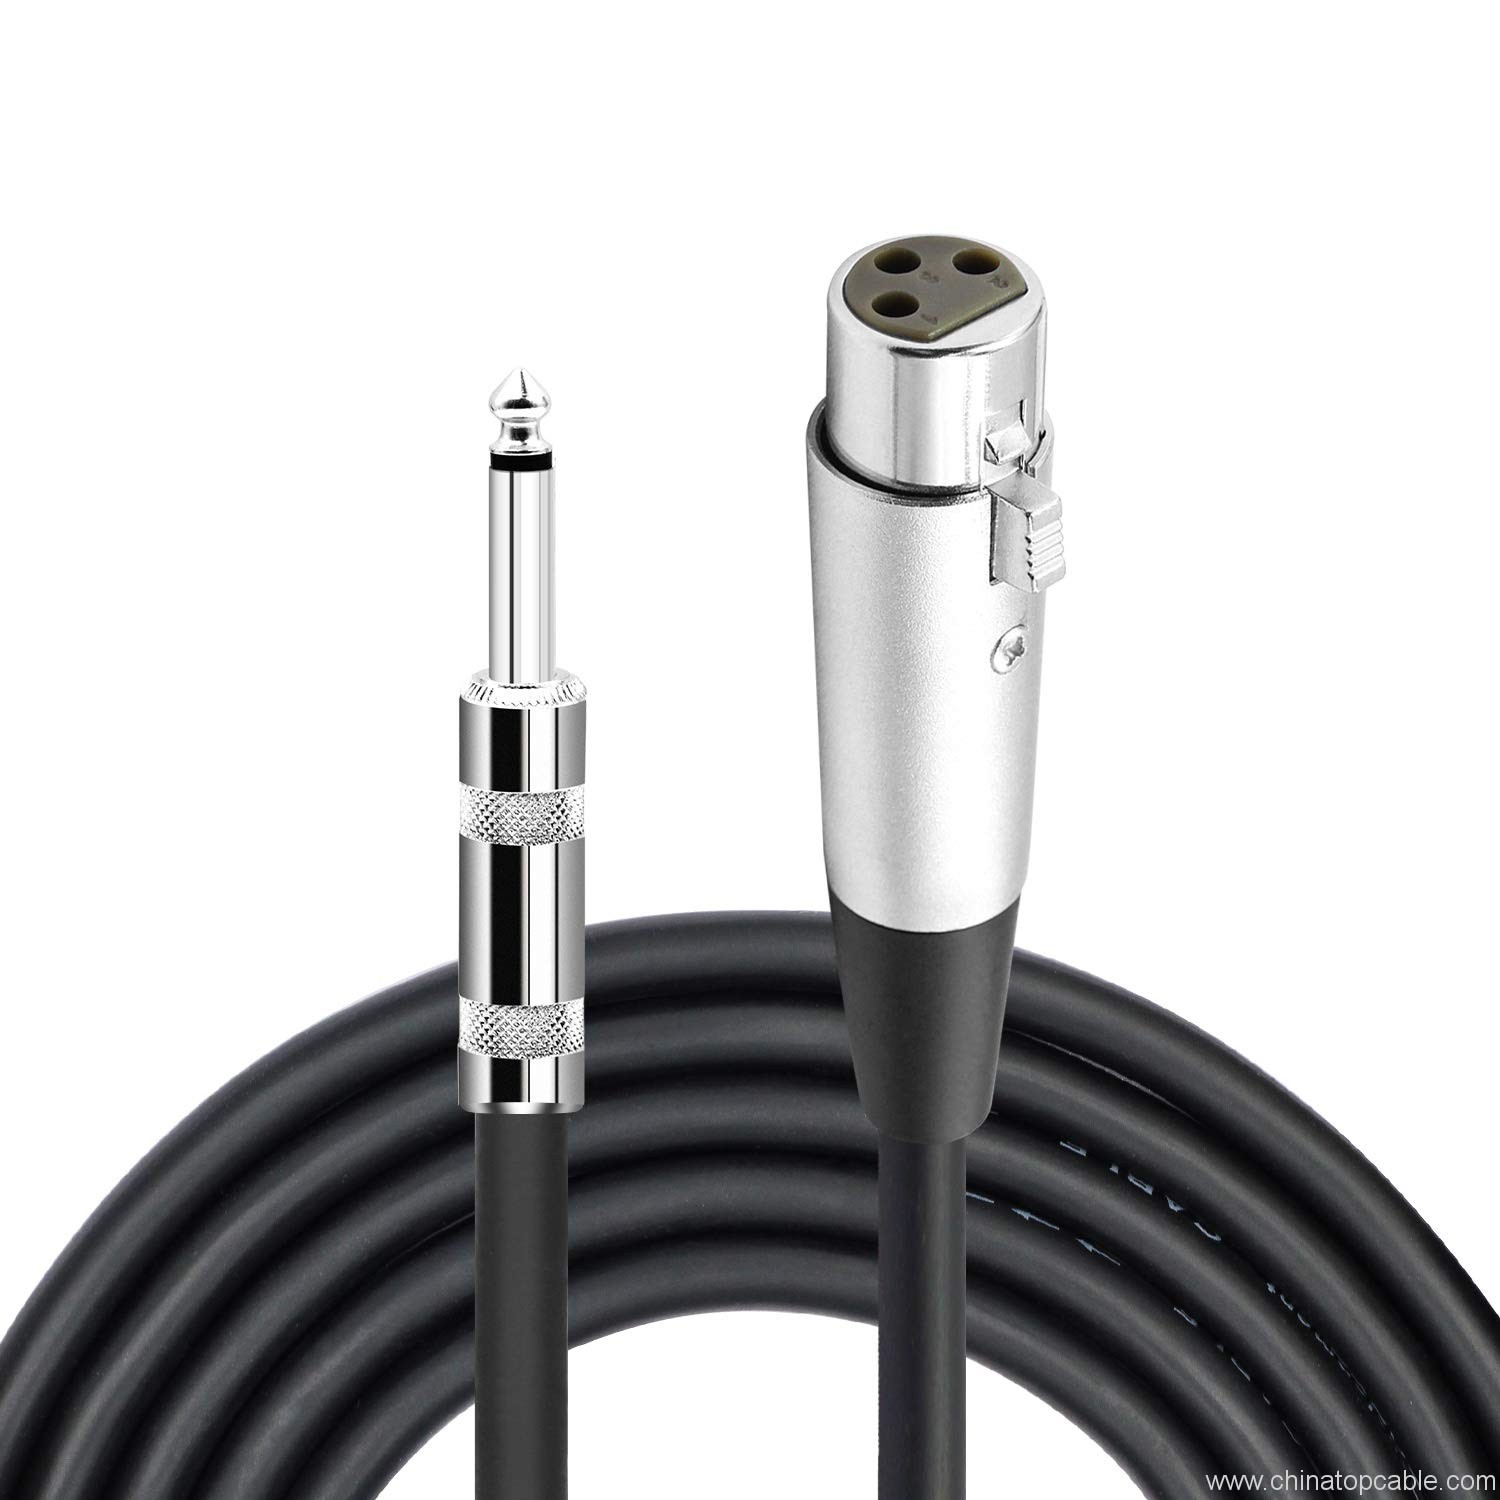 Male XLR Male to 6.35mm Mono Jack Microphone Cable 3m